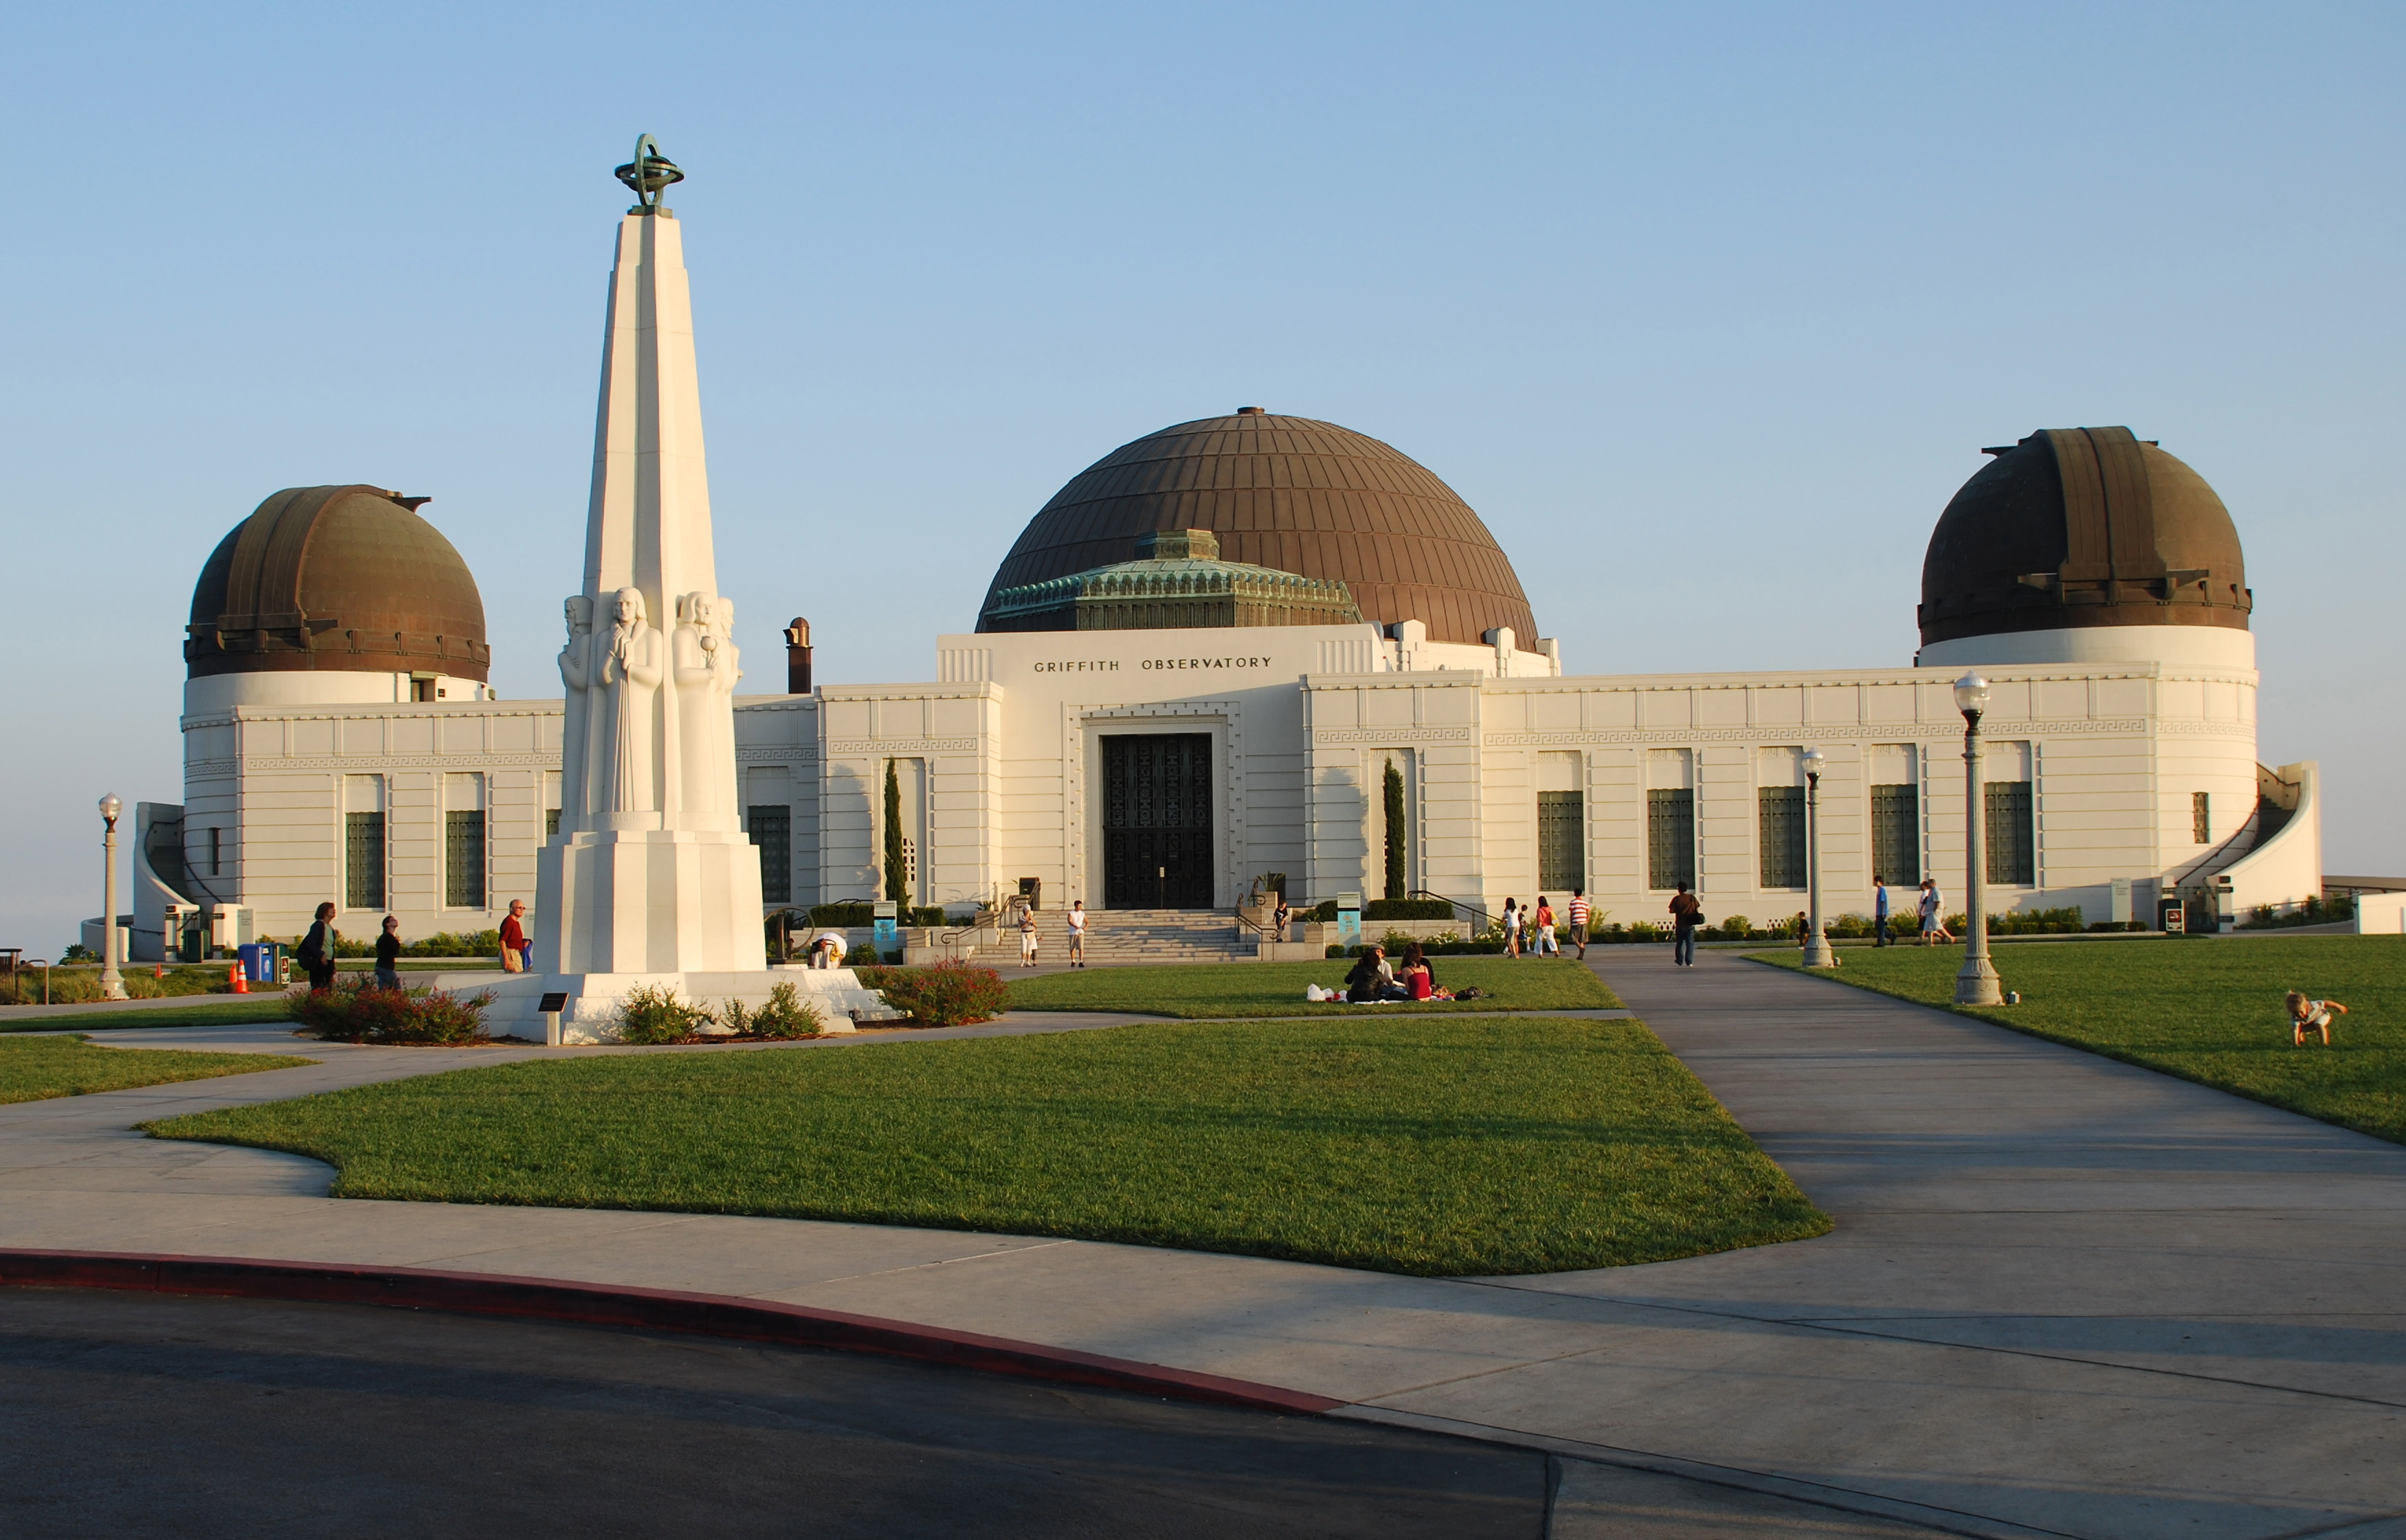 3 Griffith Observatory today